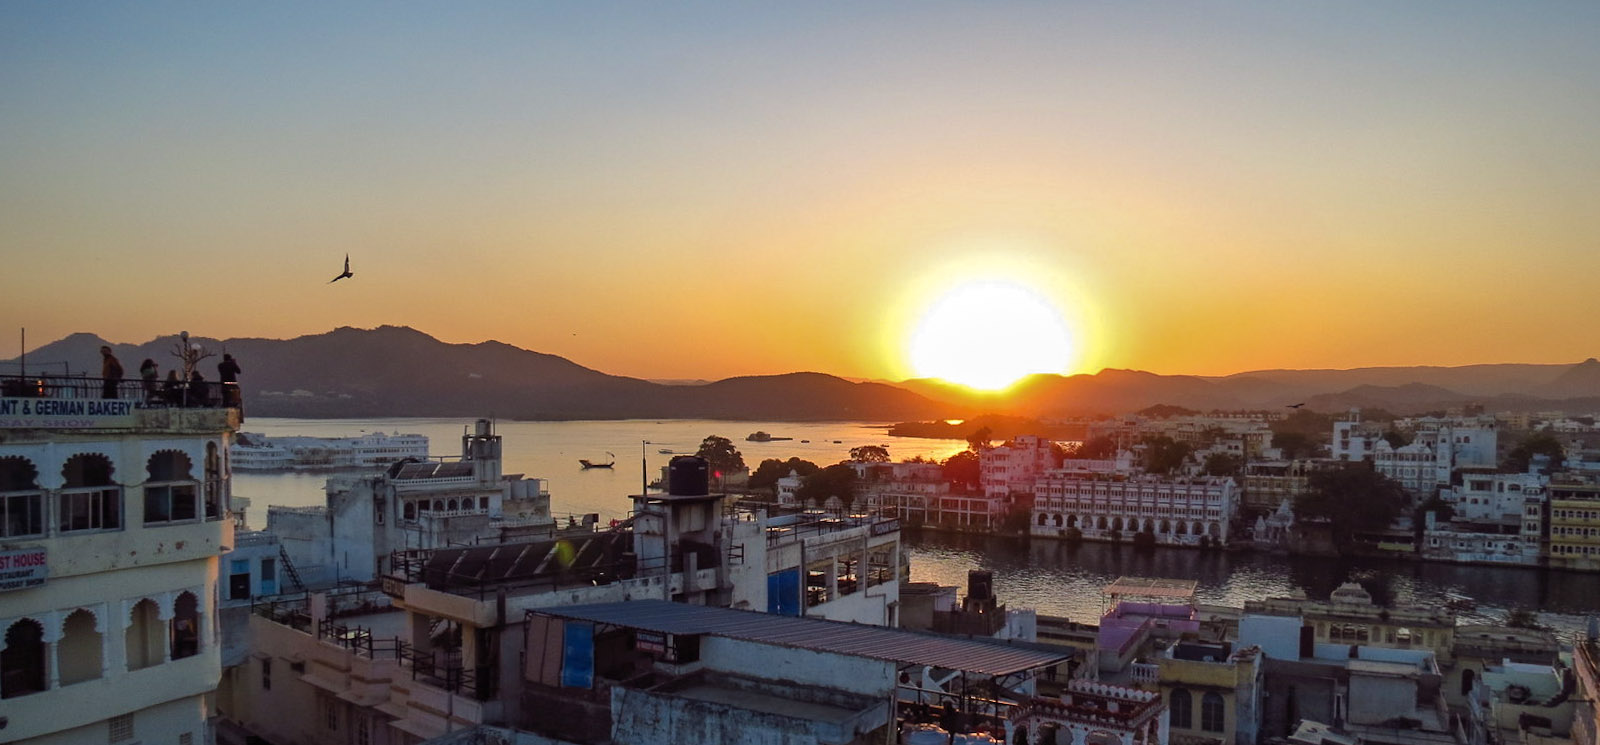 Sunset at Pichola Lake Udaipur